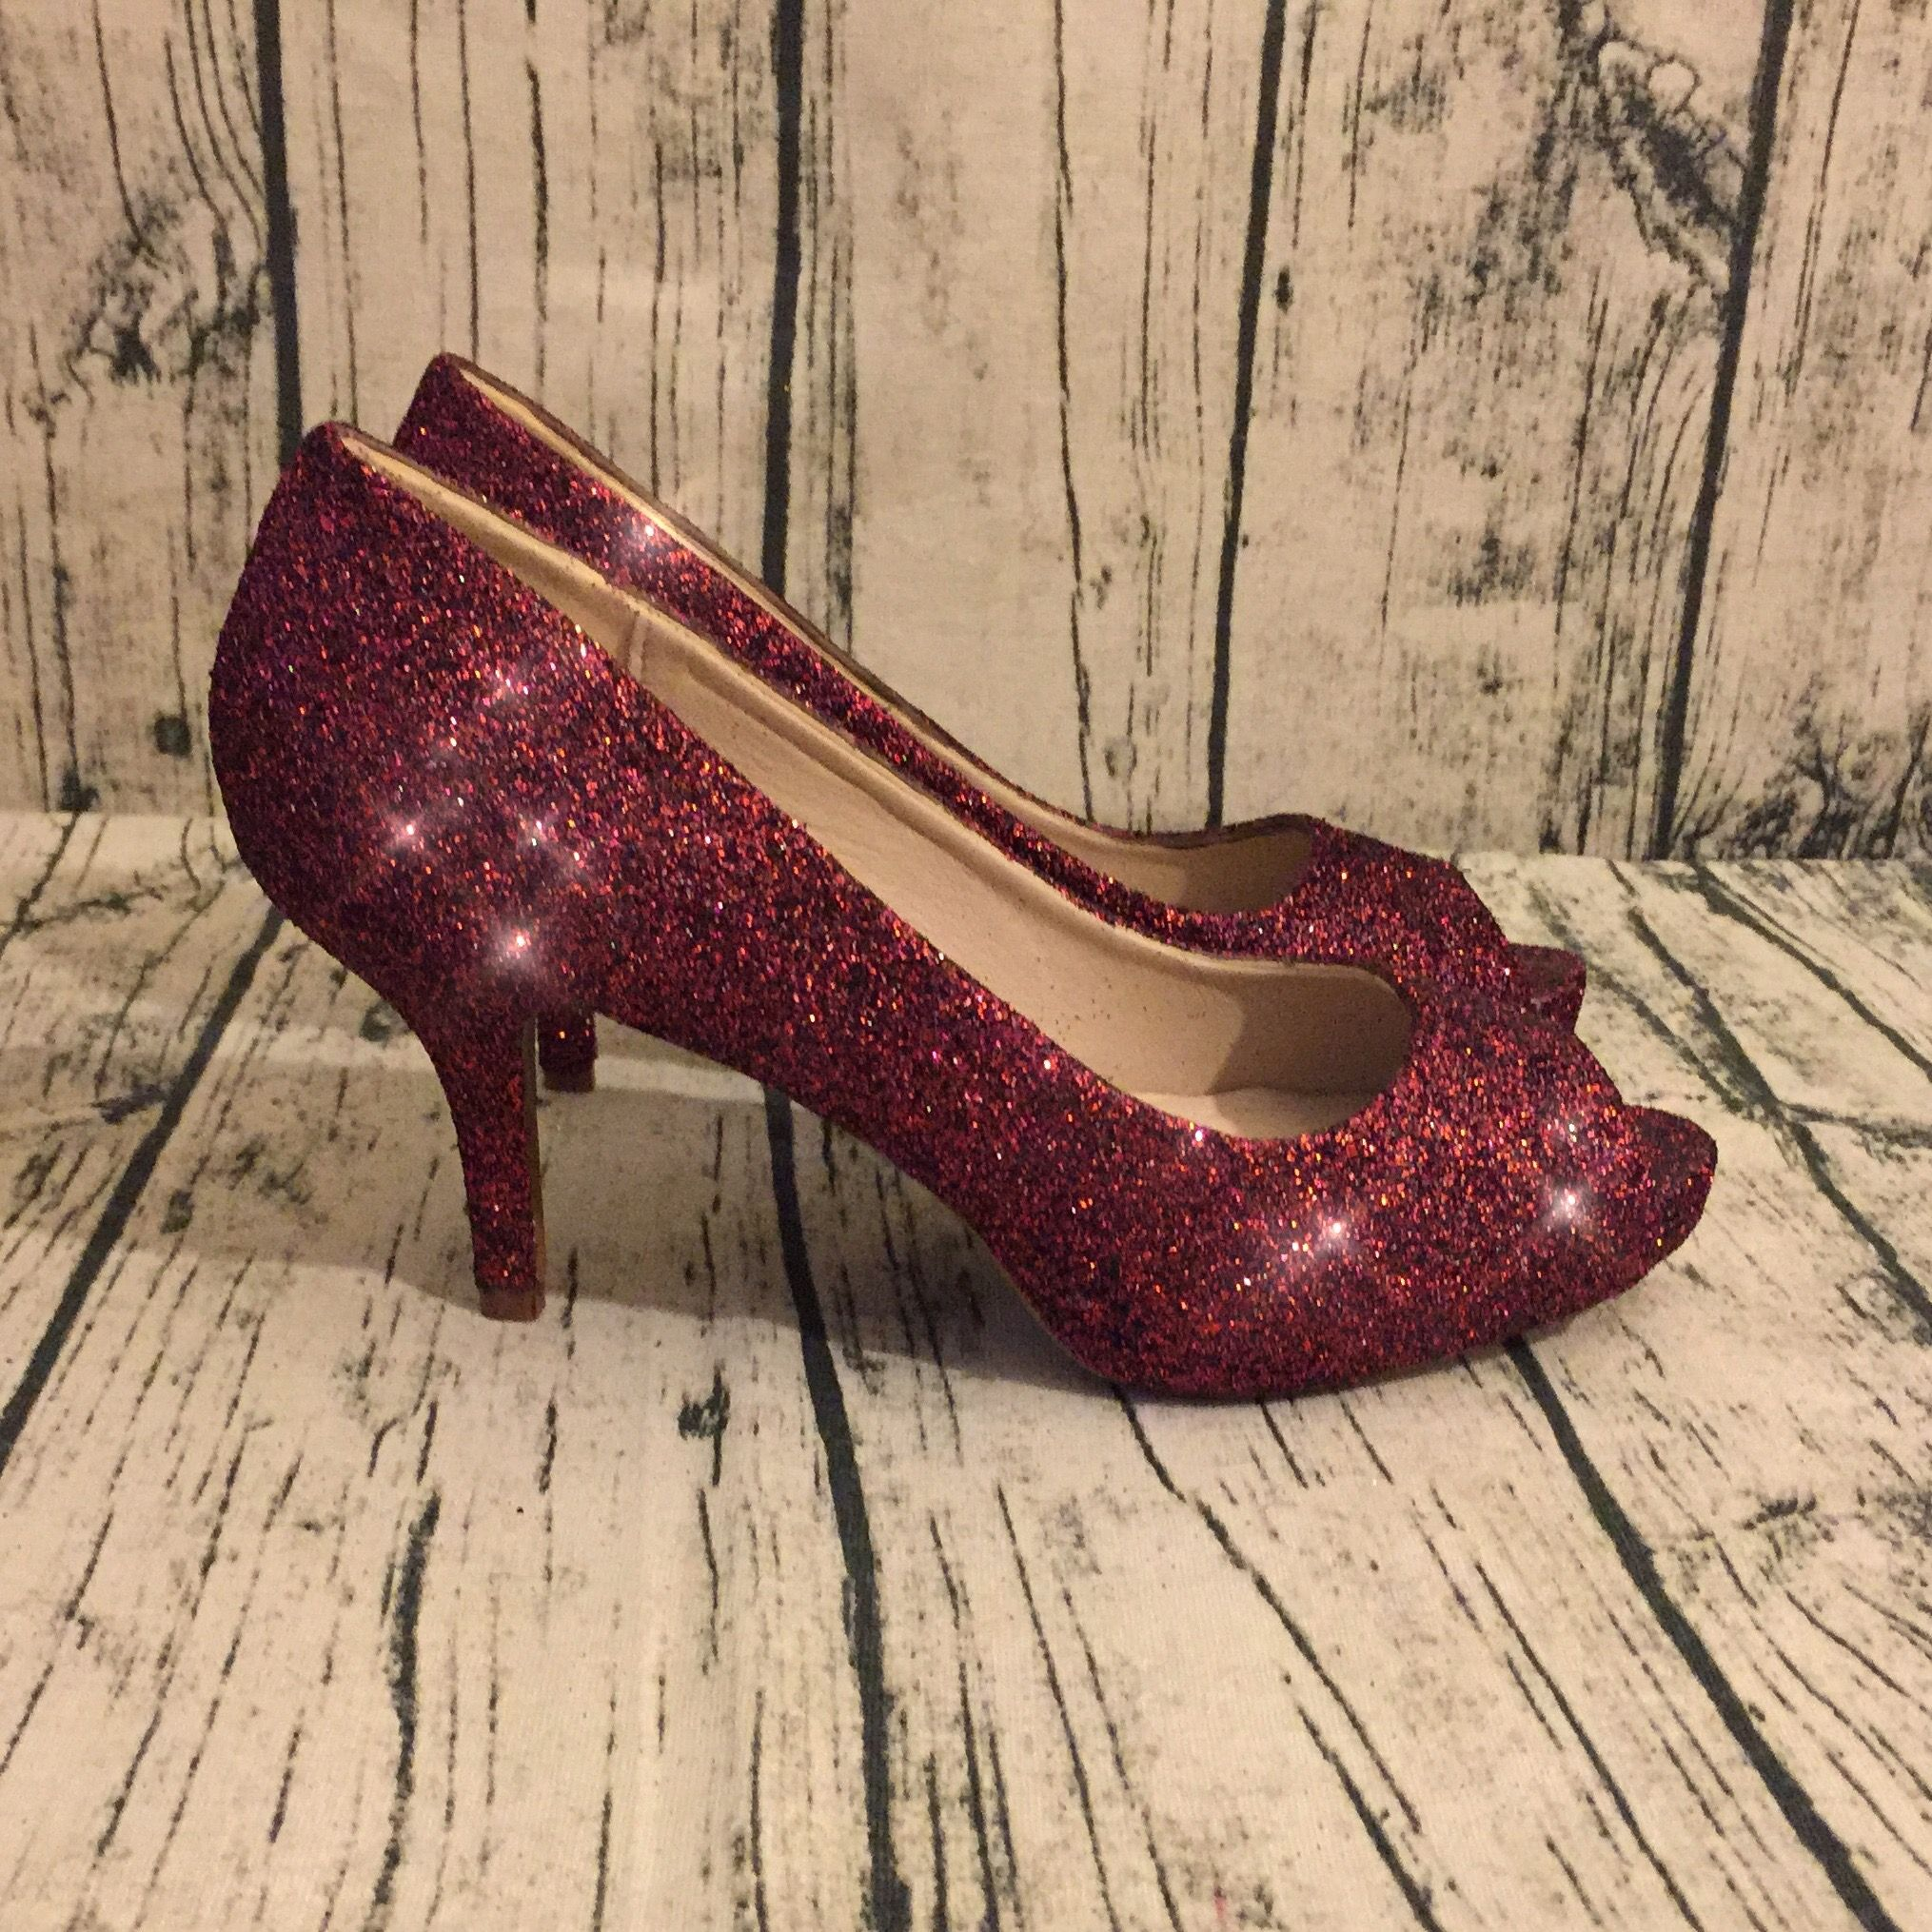 22e1eda6c Sparkly Burgundy Peep Toe Low Heels! Take $10 OFF with Code: GLAM10 ...